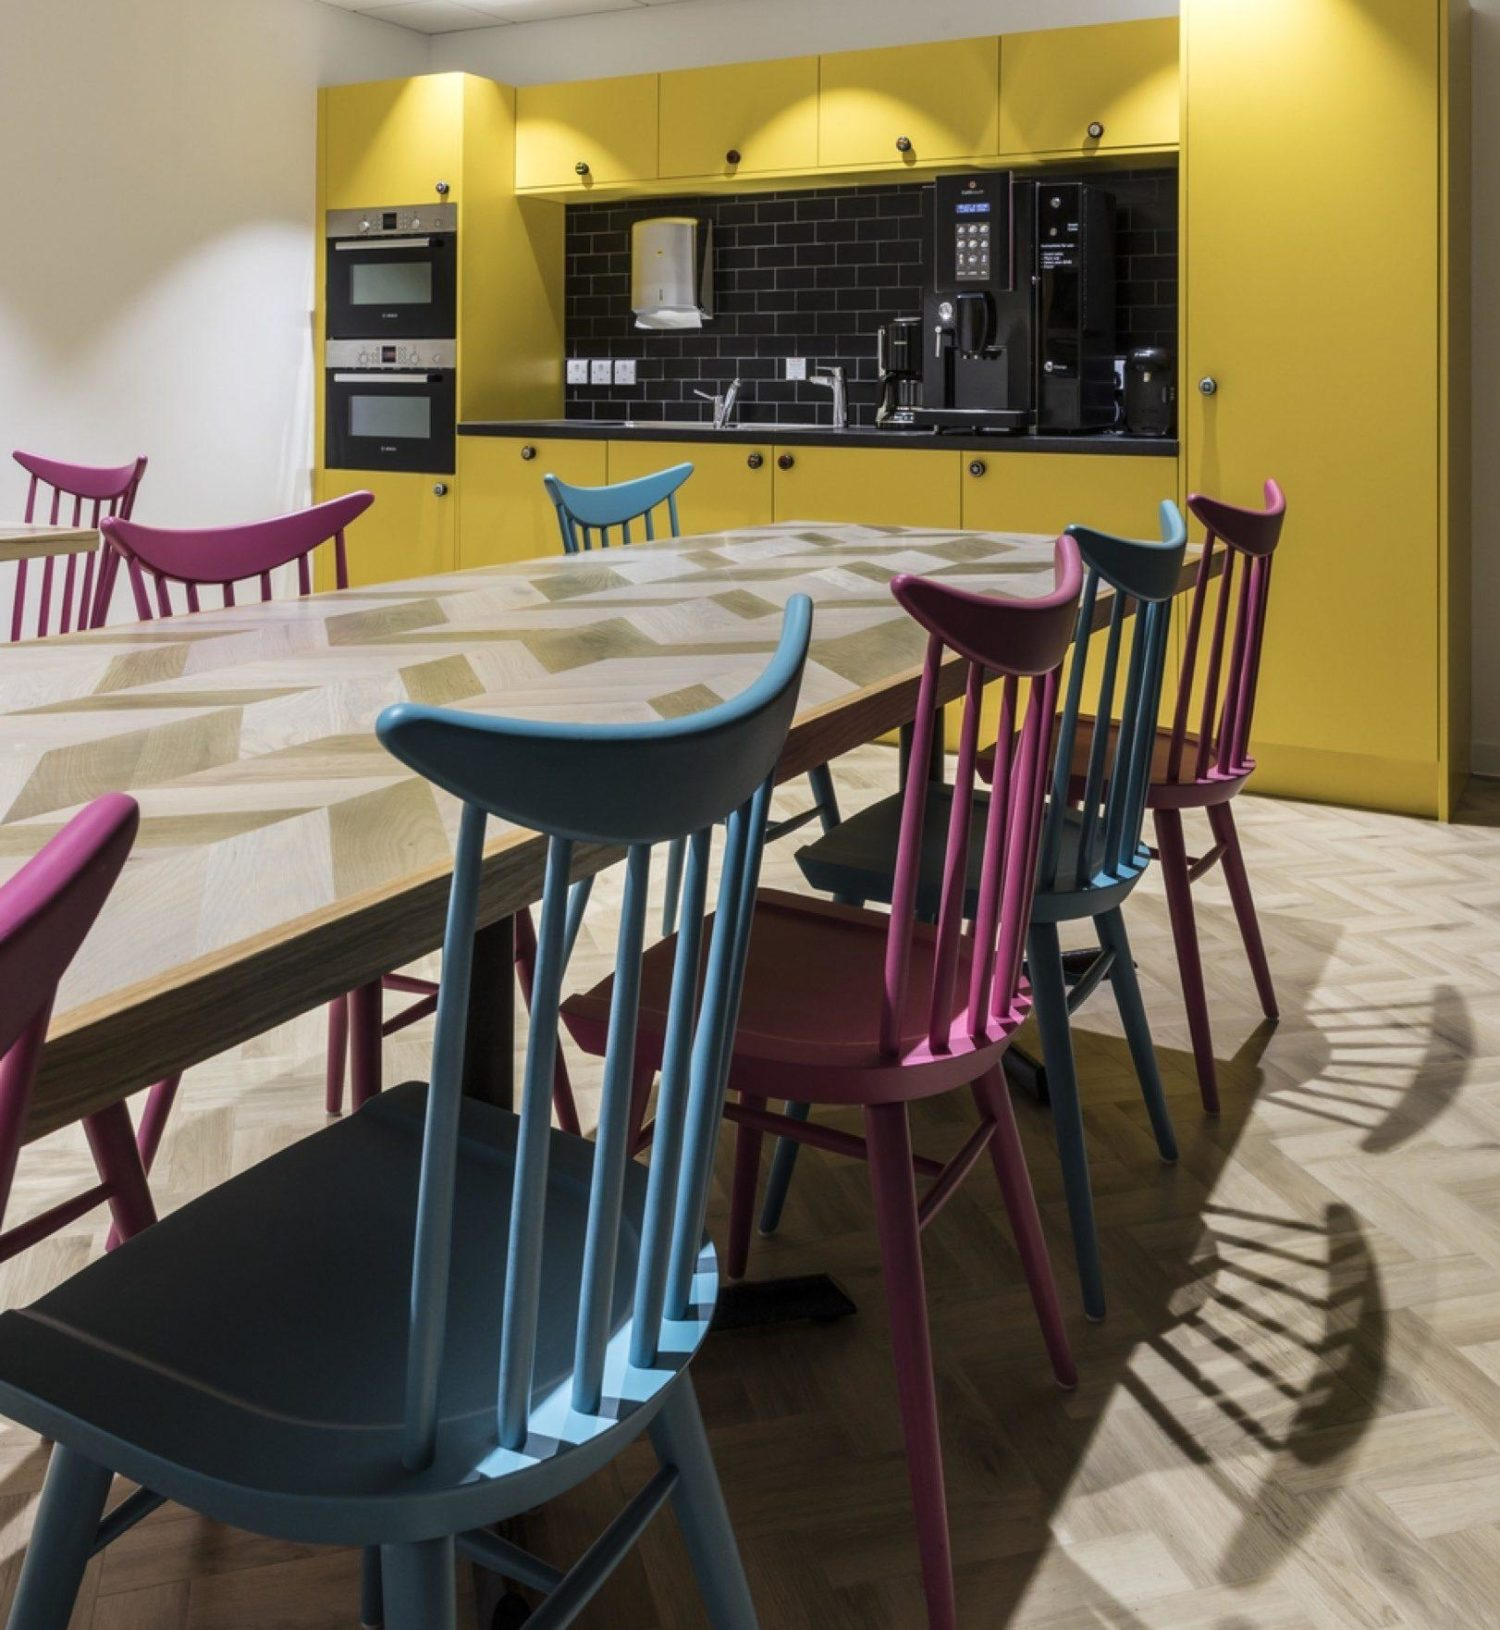 The Hut Group staff cafe fit out